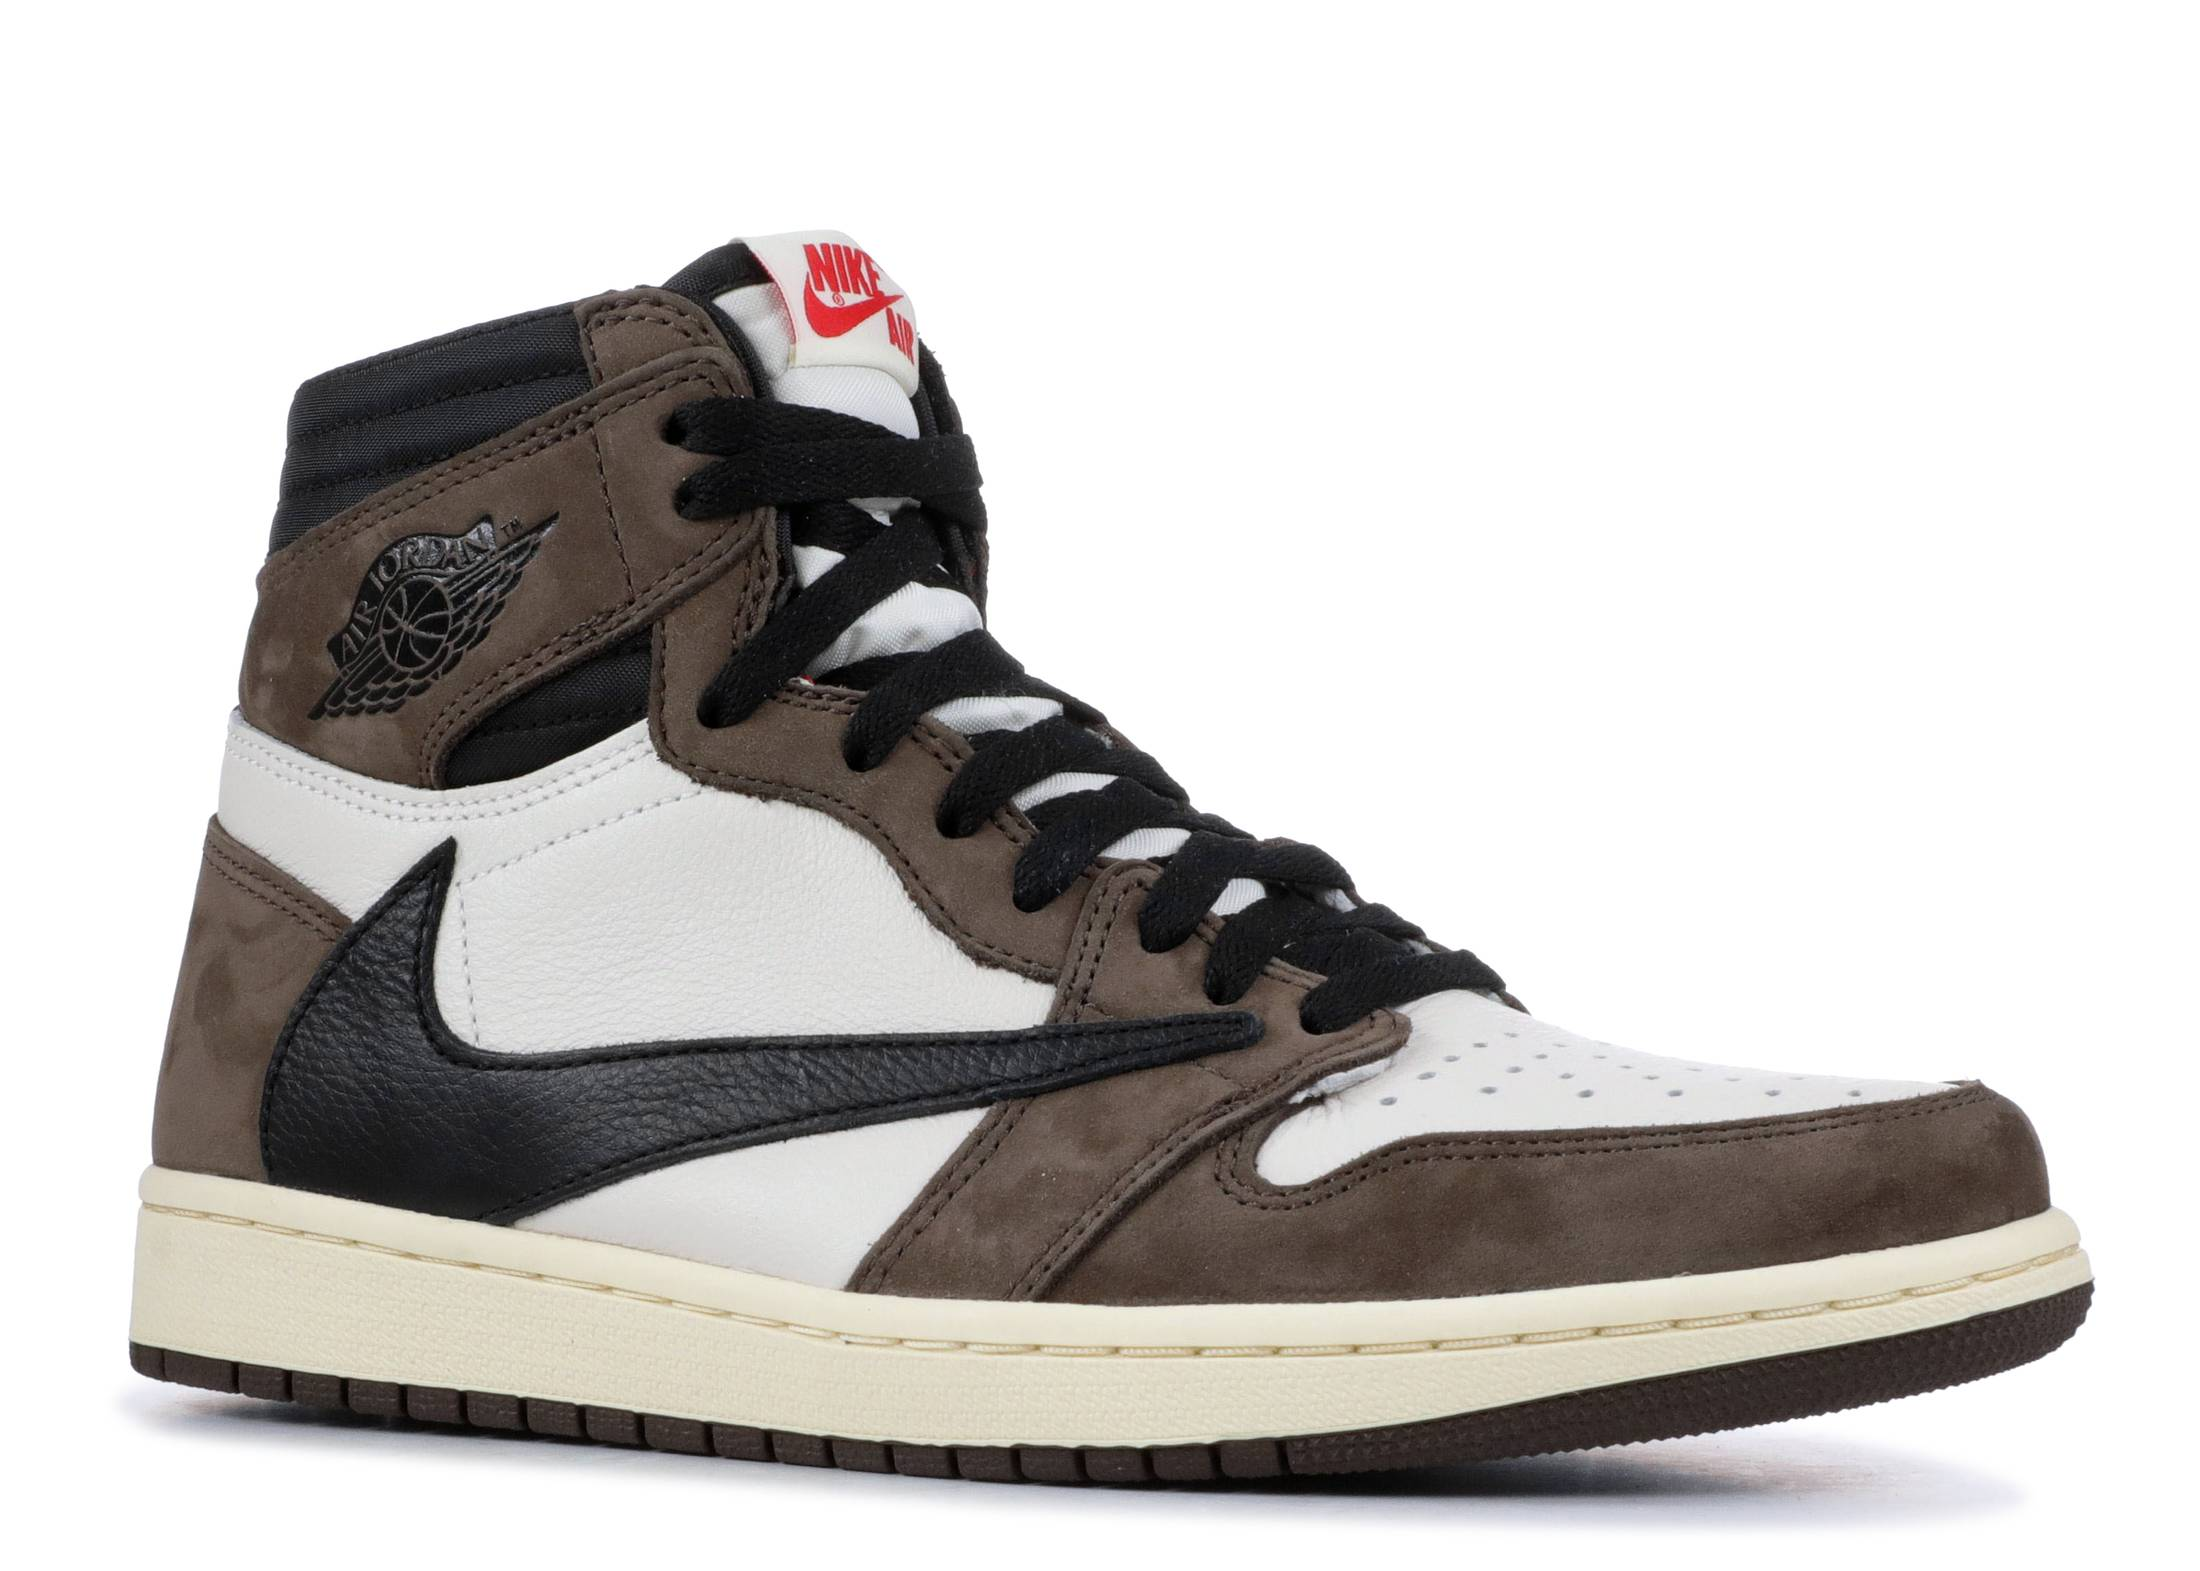 travis-scott-x-air-jordan-1-retro-high-og-mocha